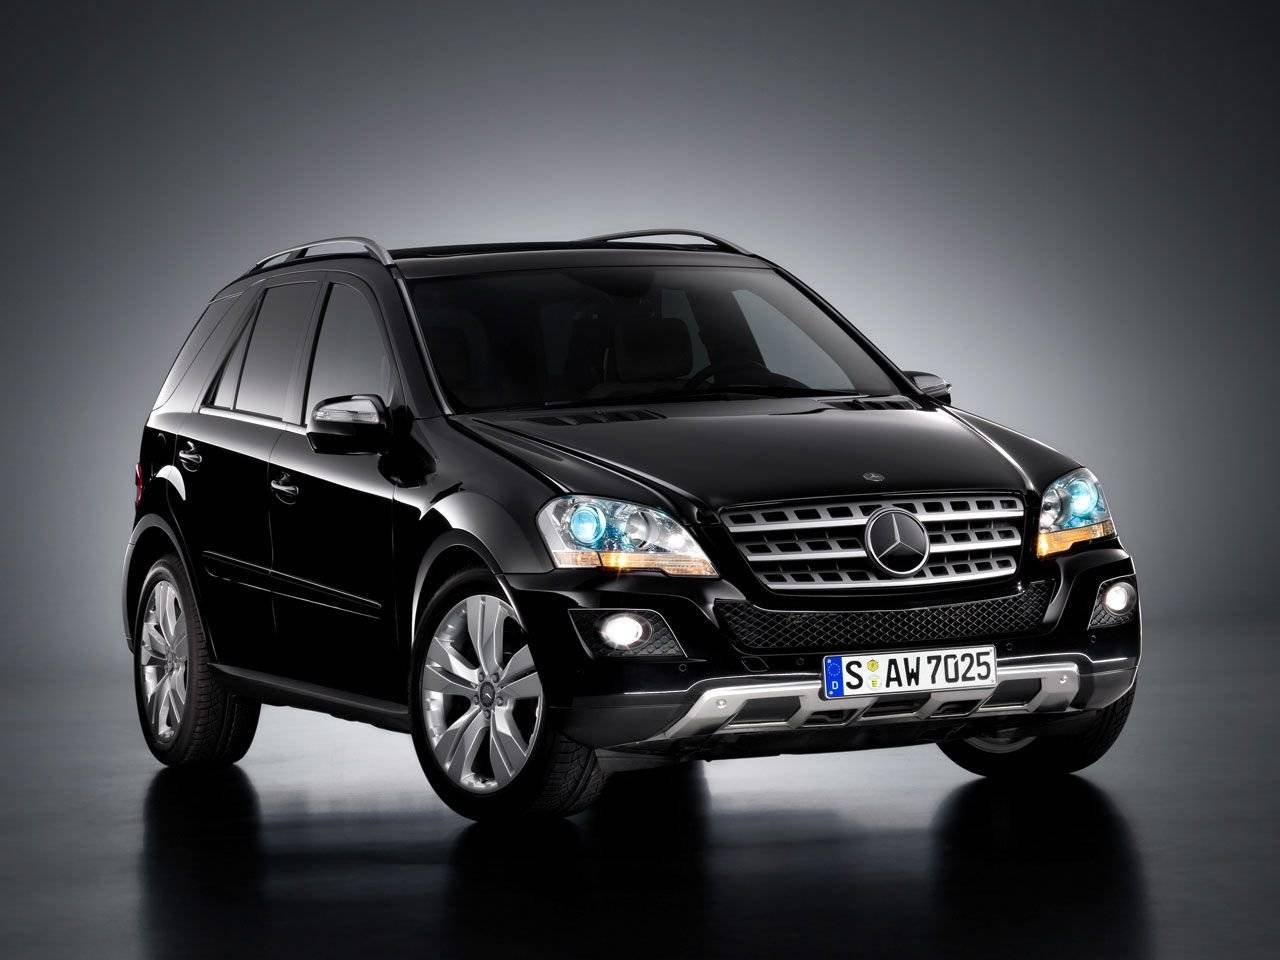 facelift mercedes ml klasse autonieuws. Black Bedroom Furniture Sets. Home Design Ideas